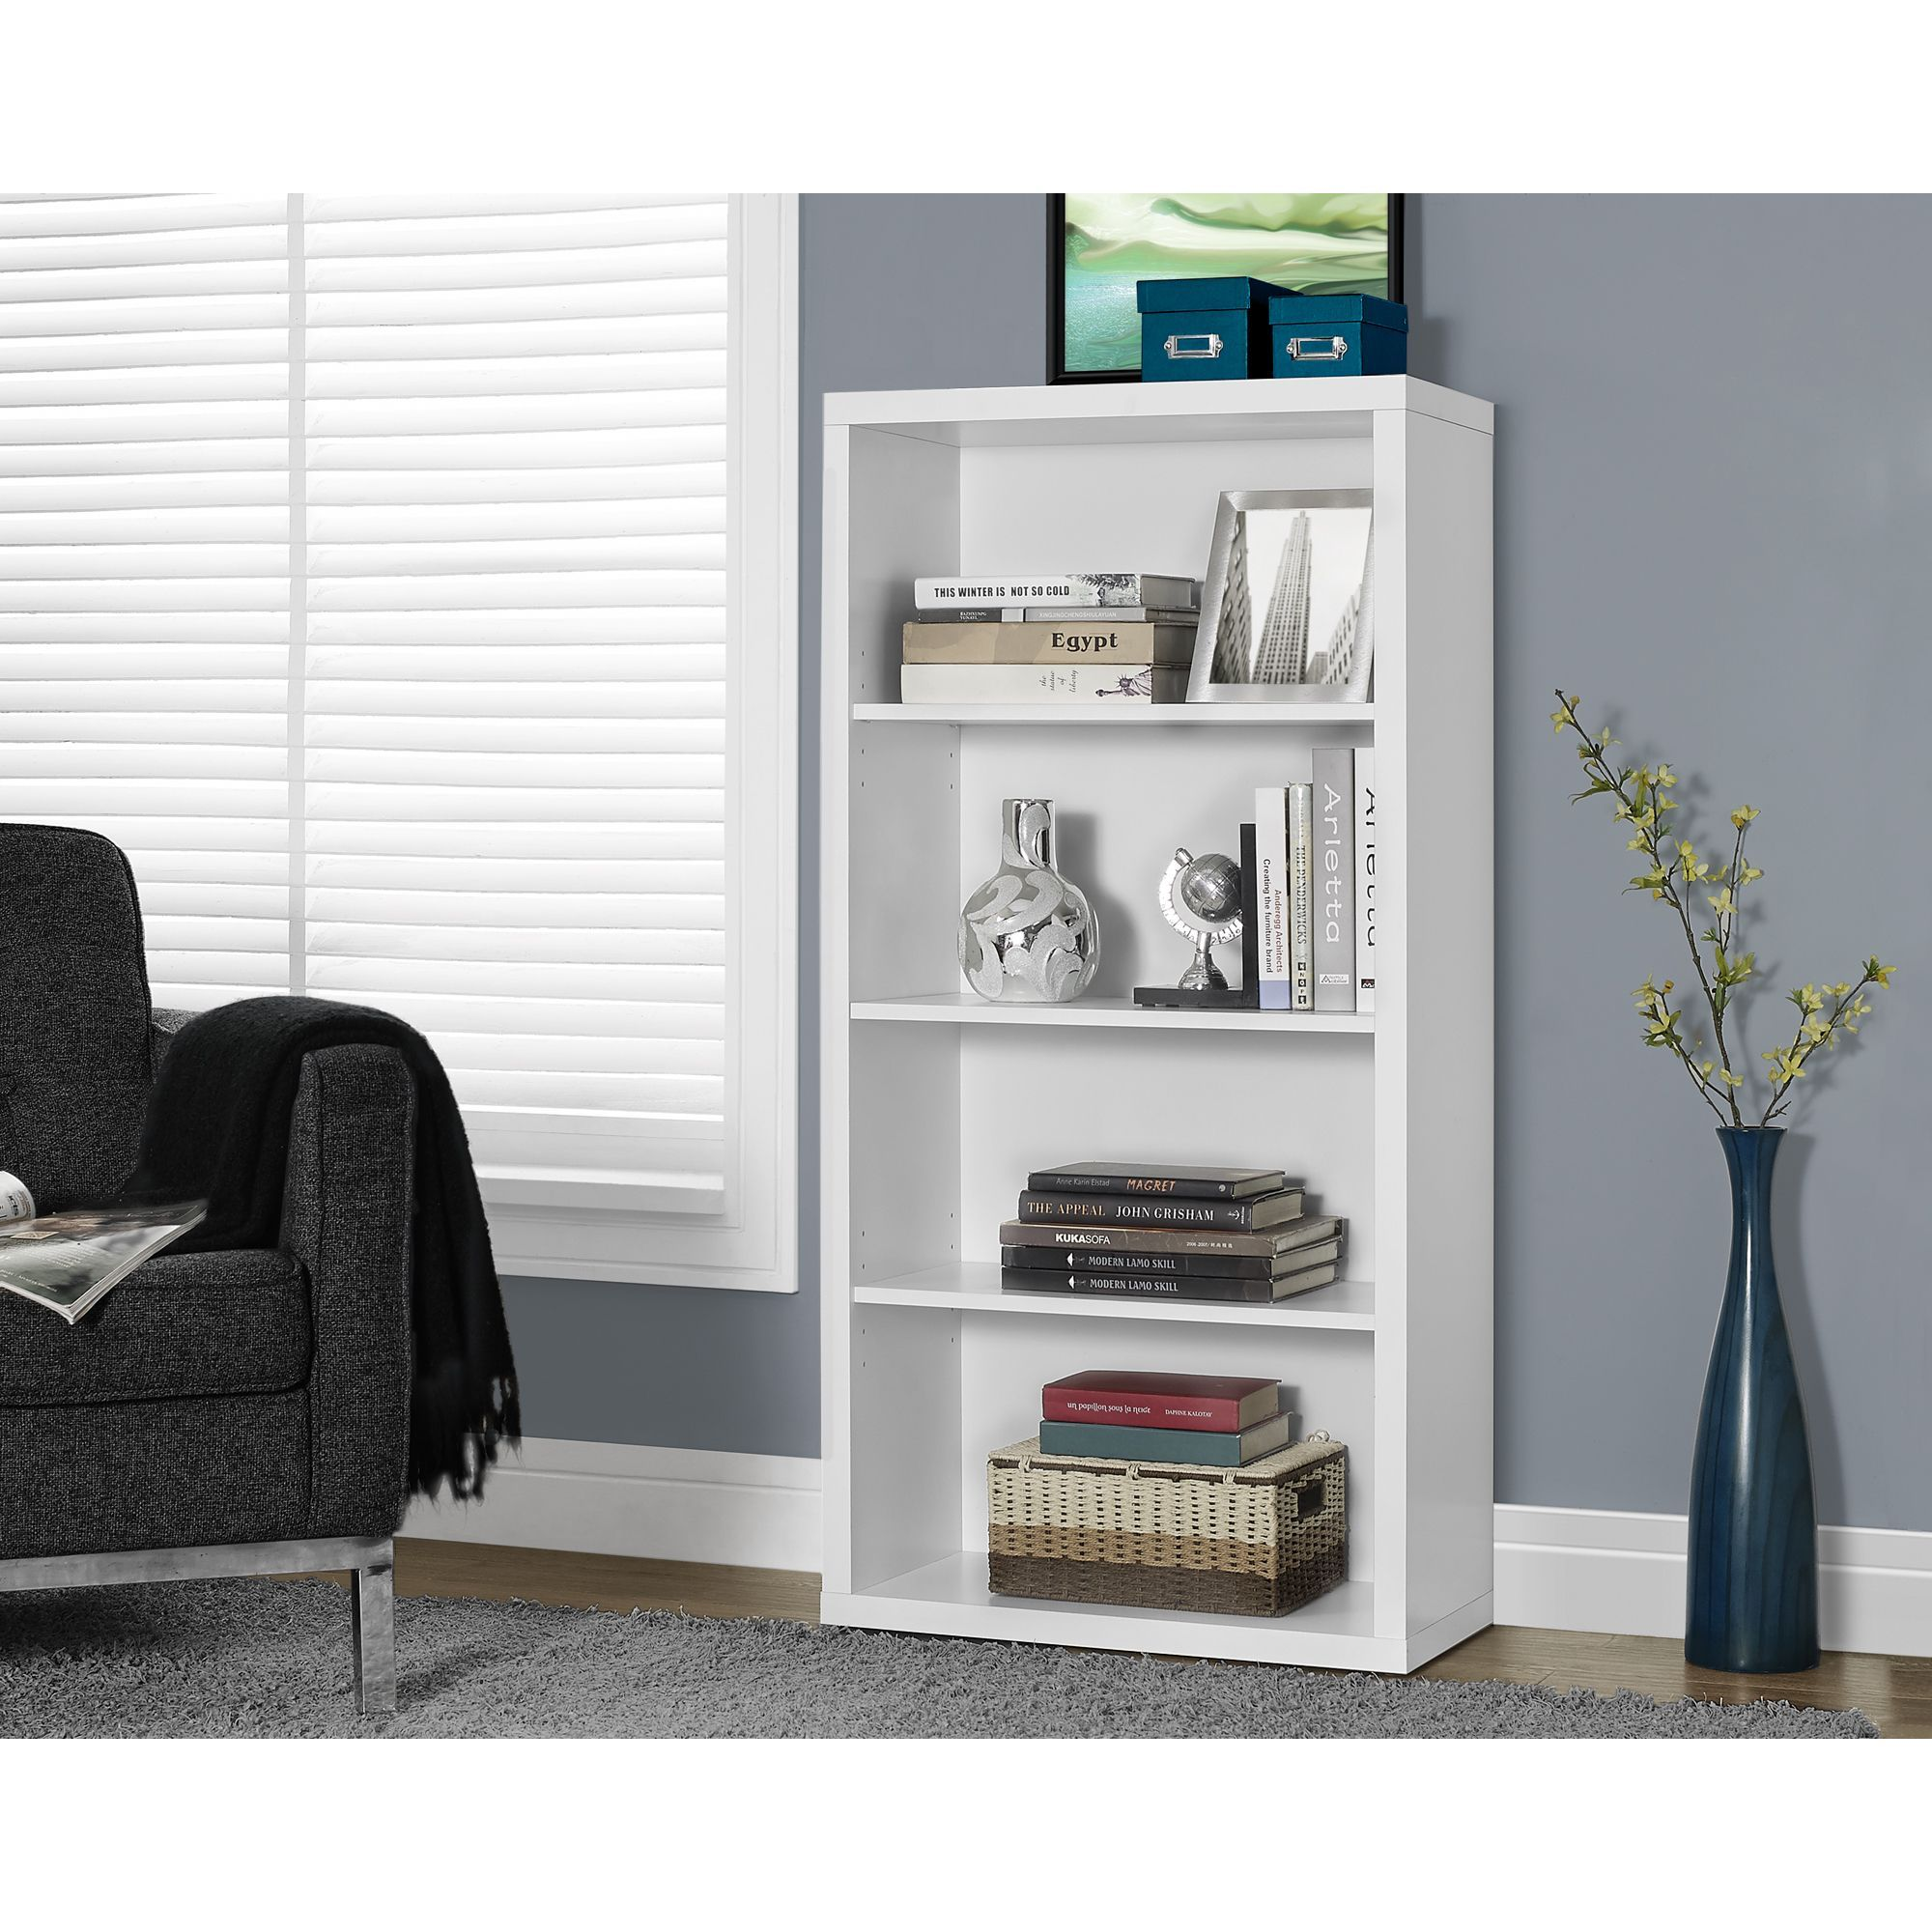 in material of bookcase ideas for styling specialties with photos barrister decoration within barristers gallery monarch furniture cookwithalocal tile wooden bookcases from